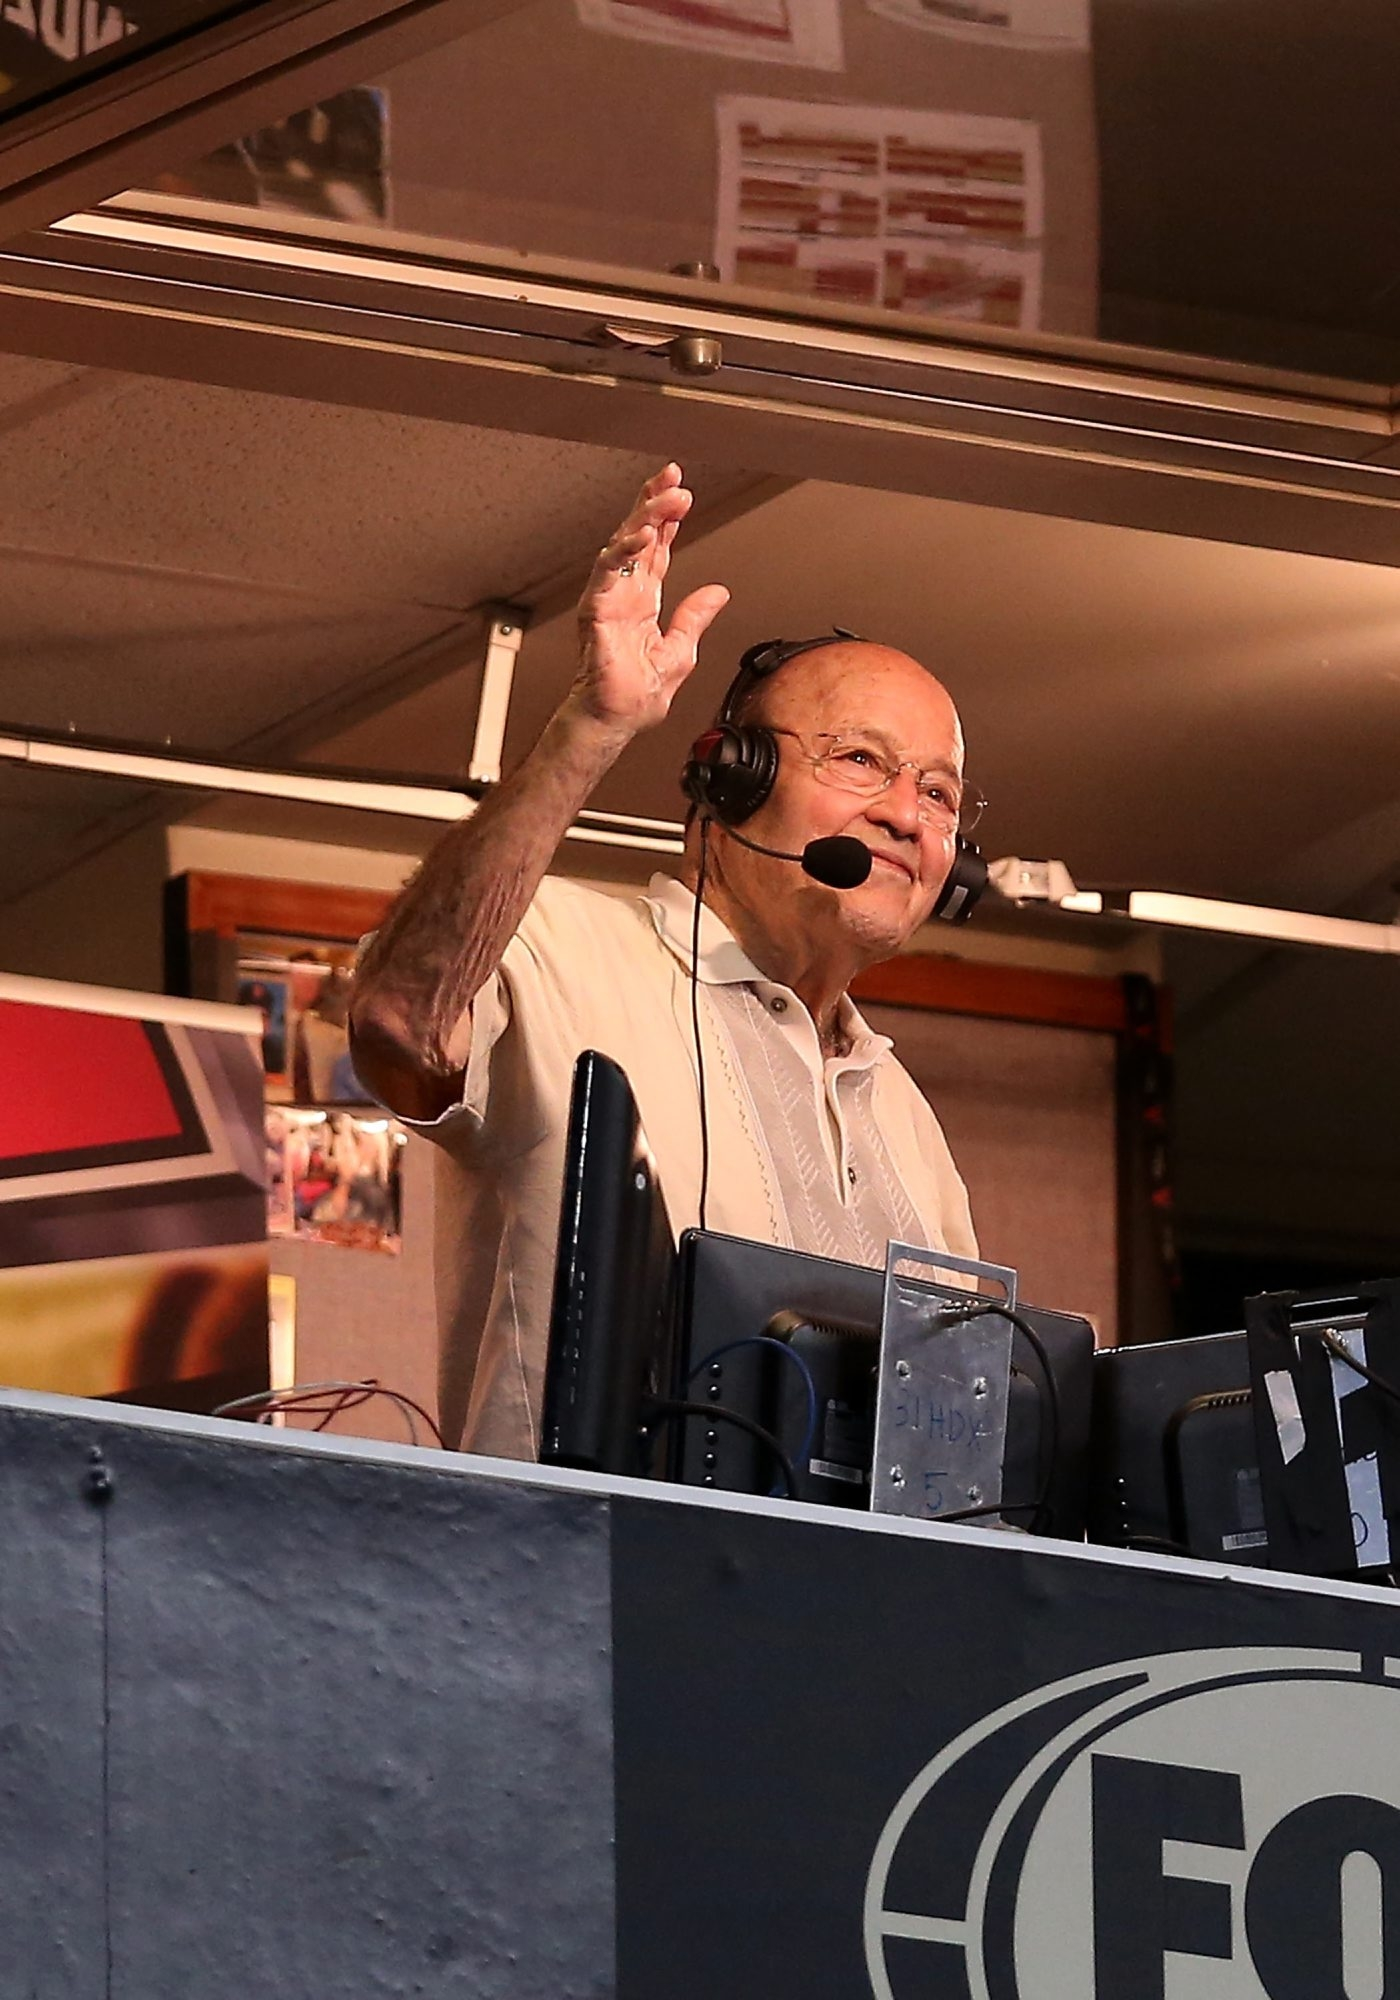 Broadcaster Joe Garagiola, who died March 23, waves to fans upon his retirement in 2013 in Phoenix.